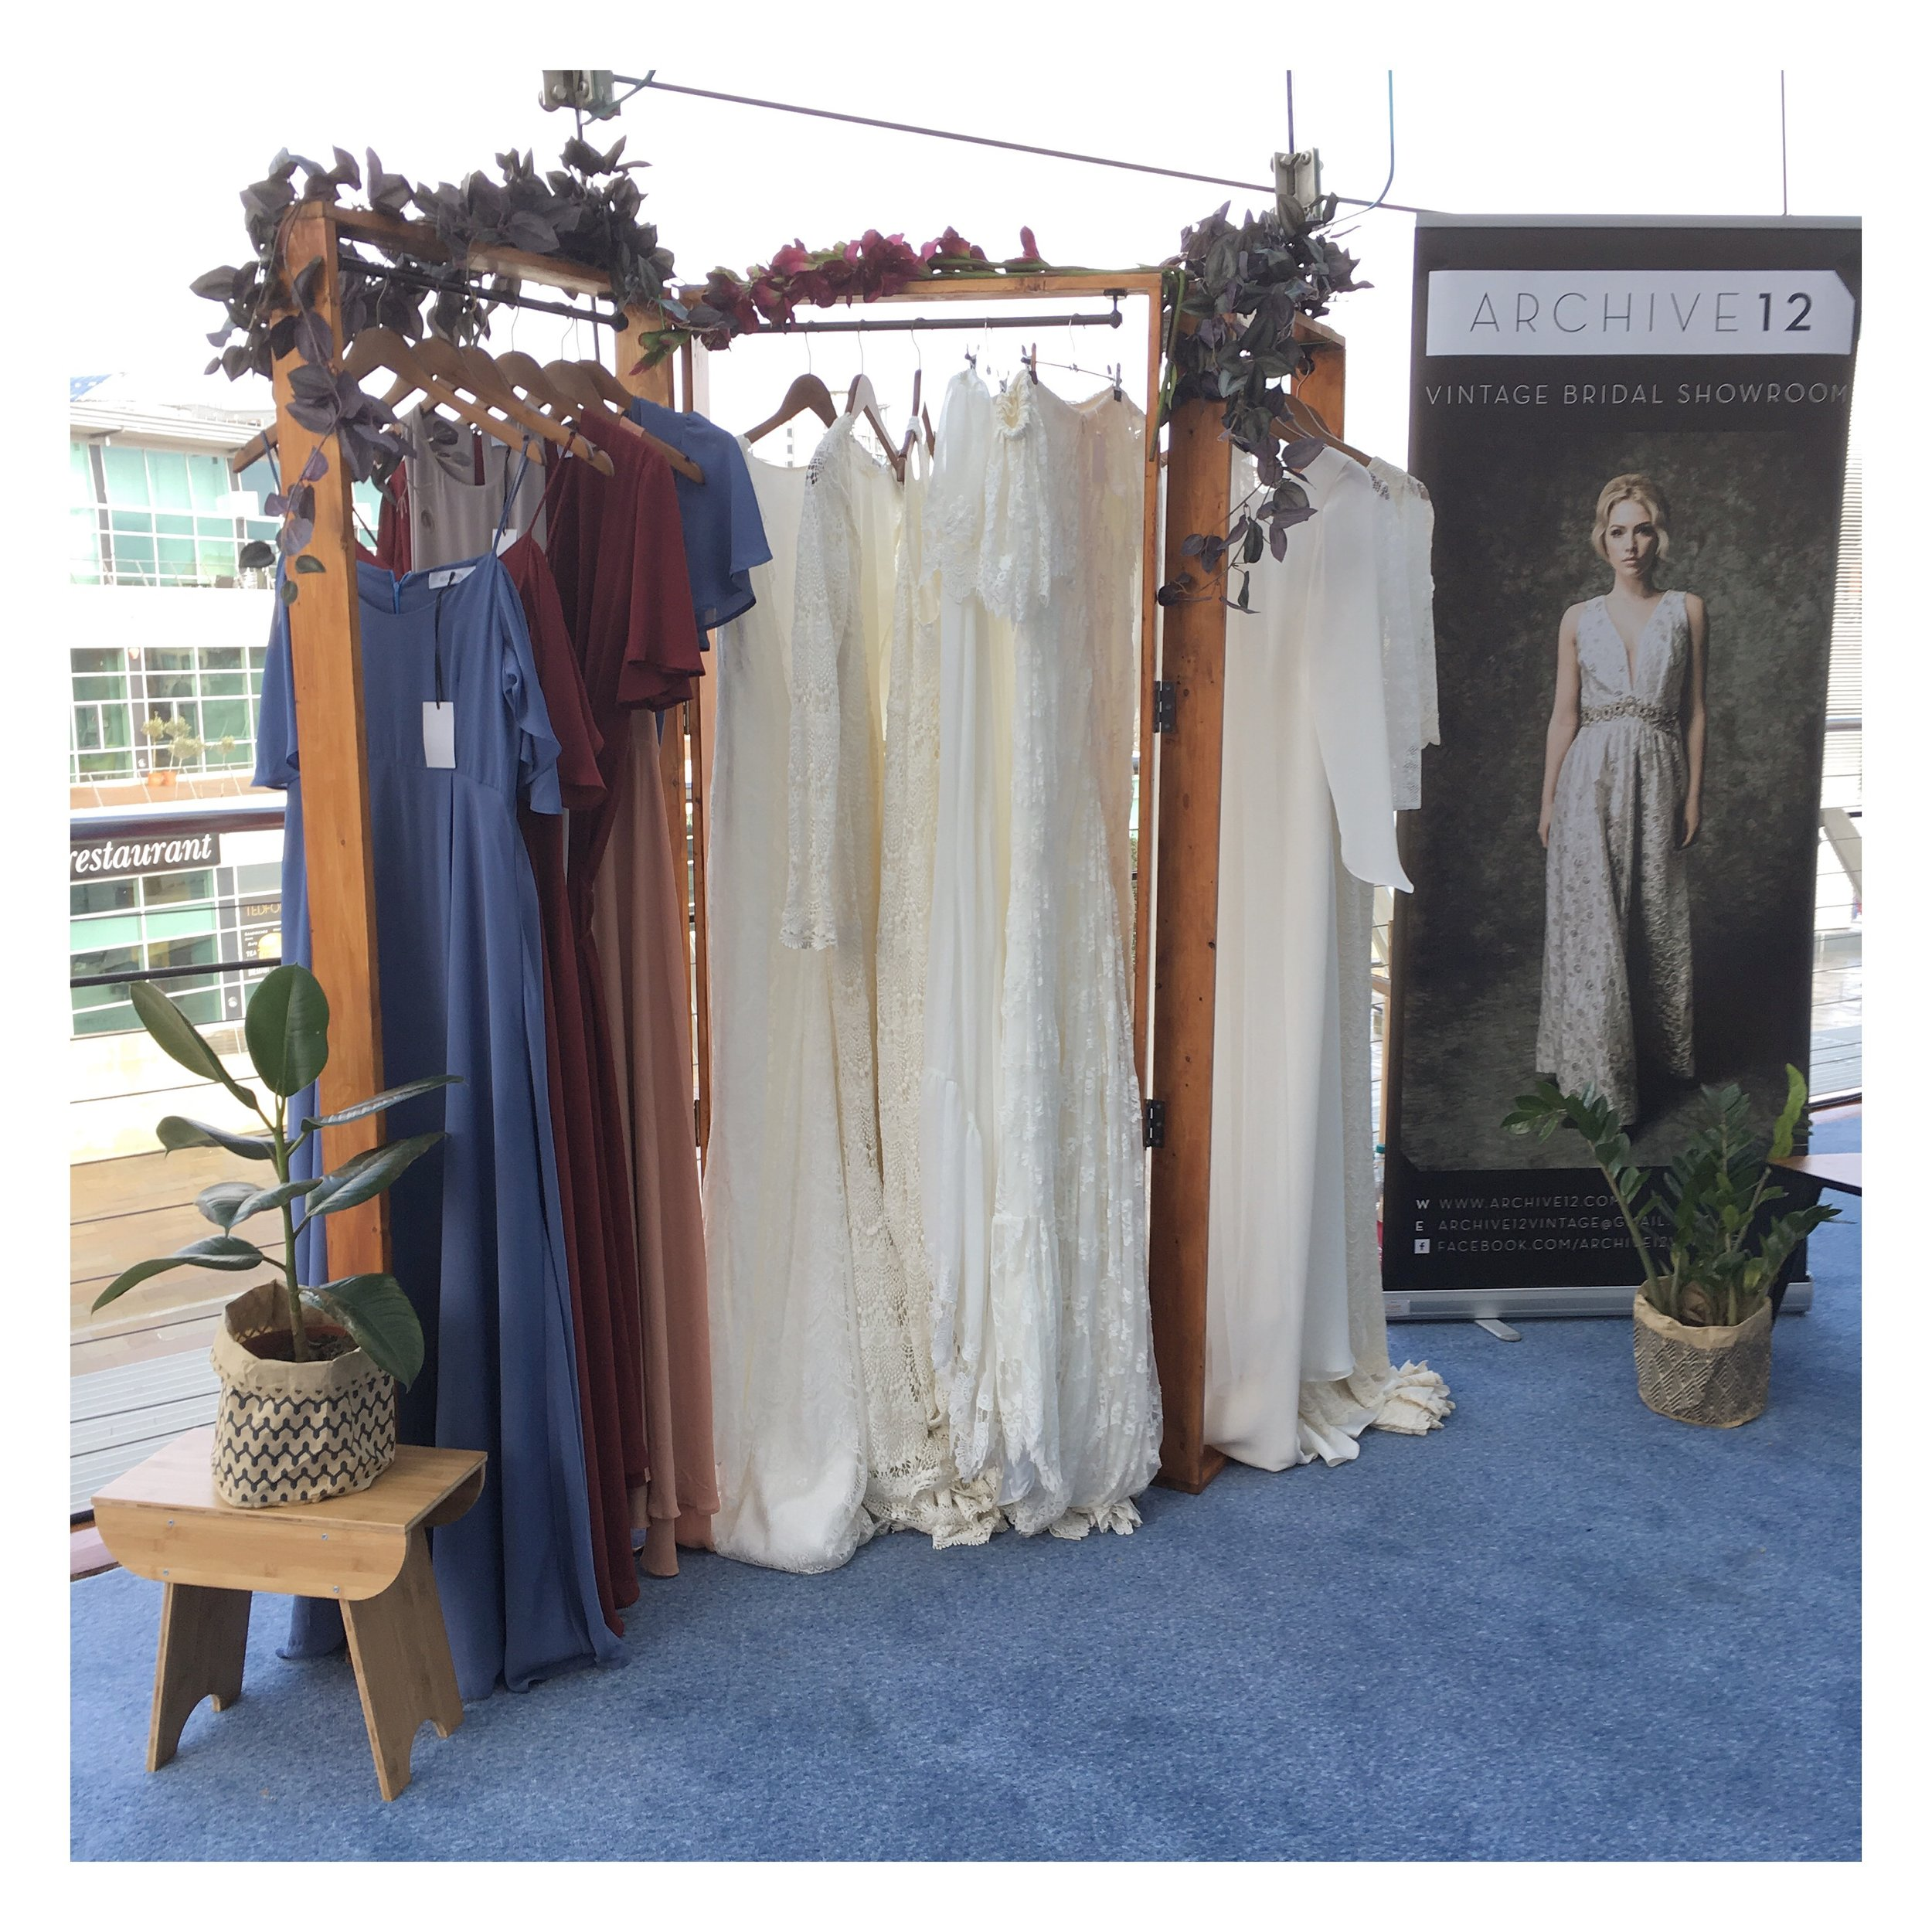 cool wedding fairs ni - archive 12 boutique belfast